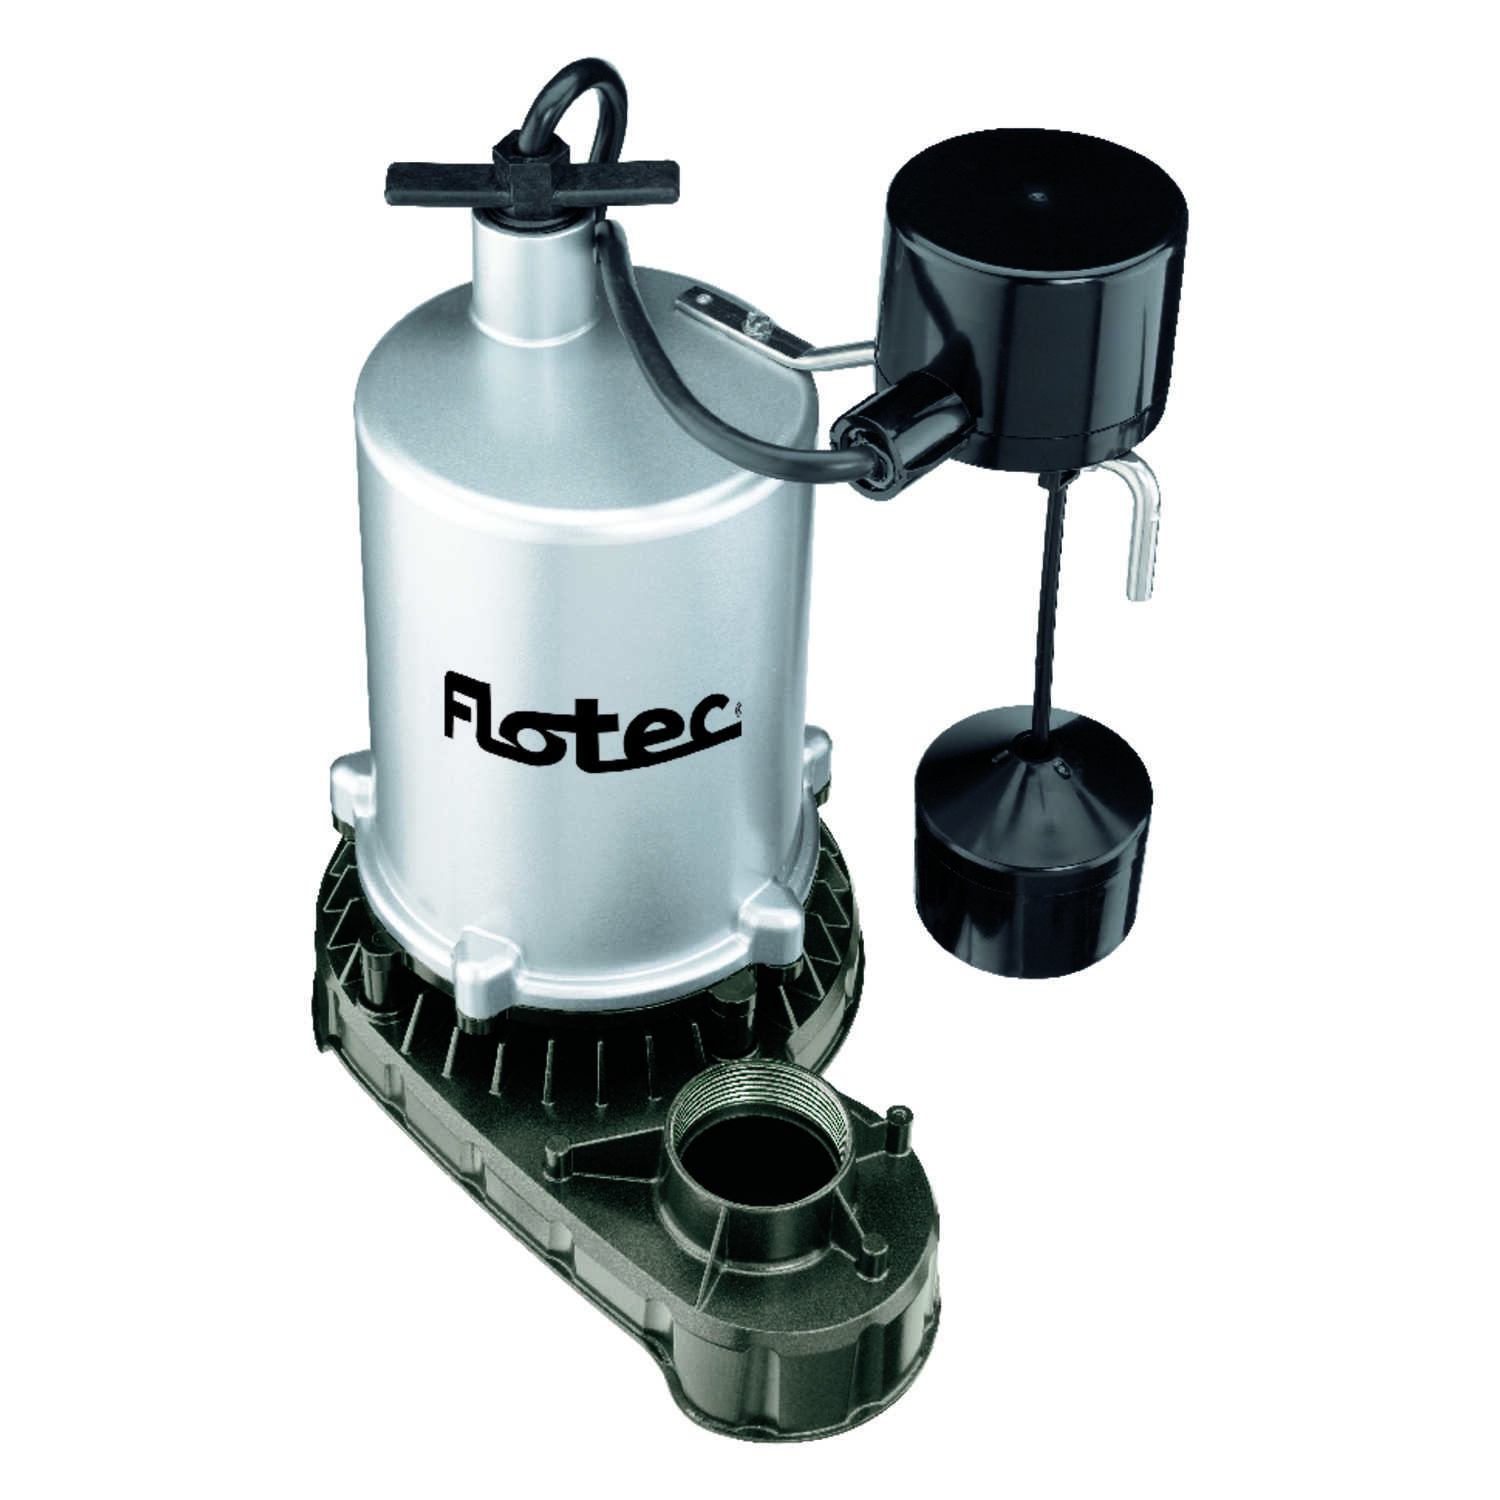 Flotec  1 hp 6660 gph Zinc  Submersible Sump Pump